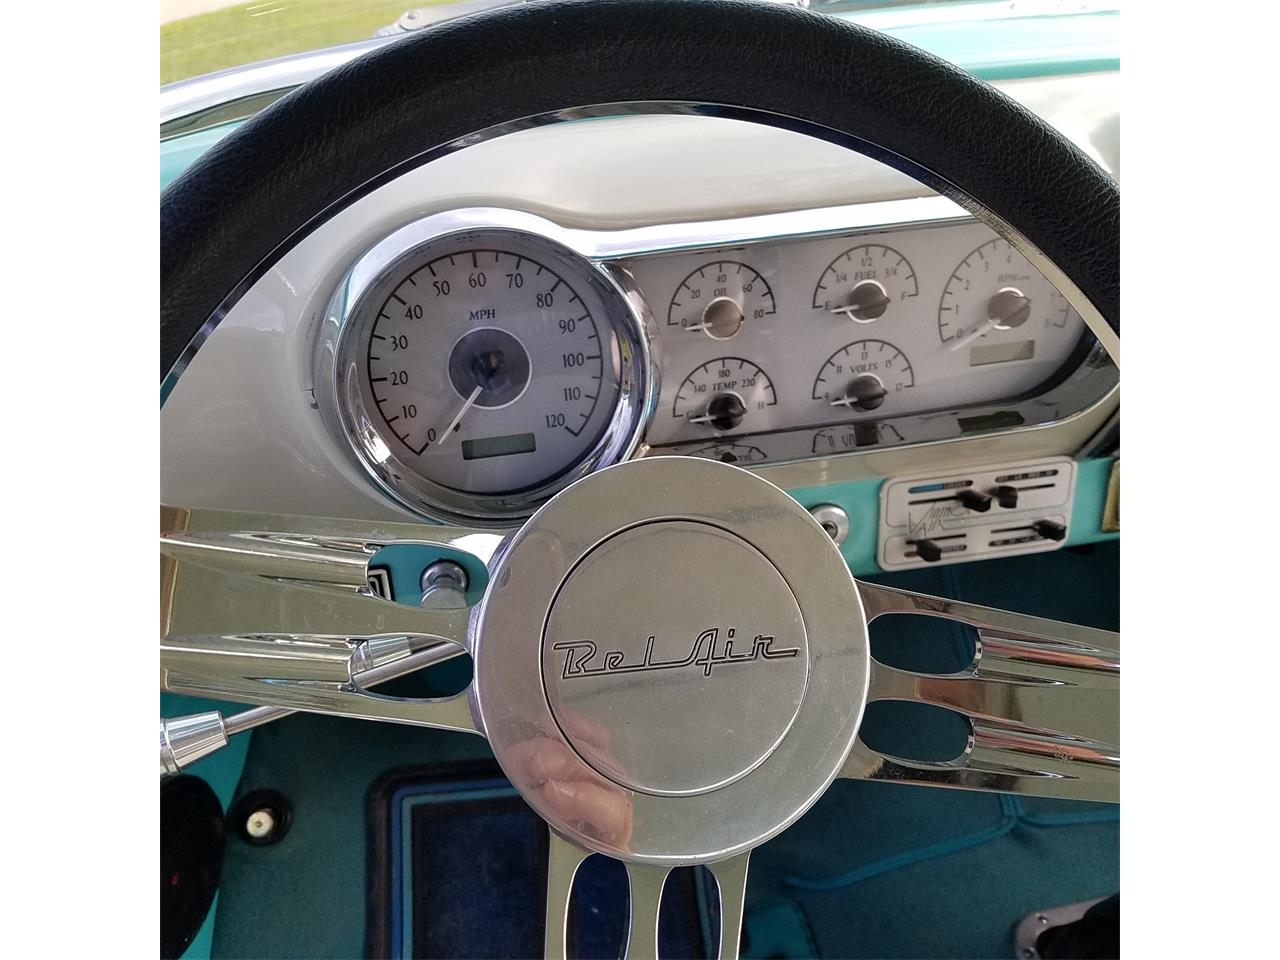 Large Picture of '54 Chevrolet Bel Air located in PLAINFIELD Indiana Offered by a Private Seller - QVHL